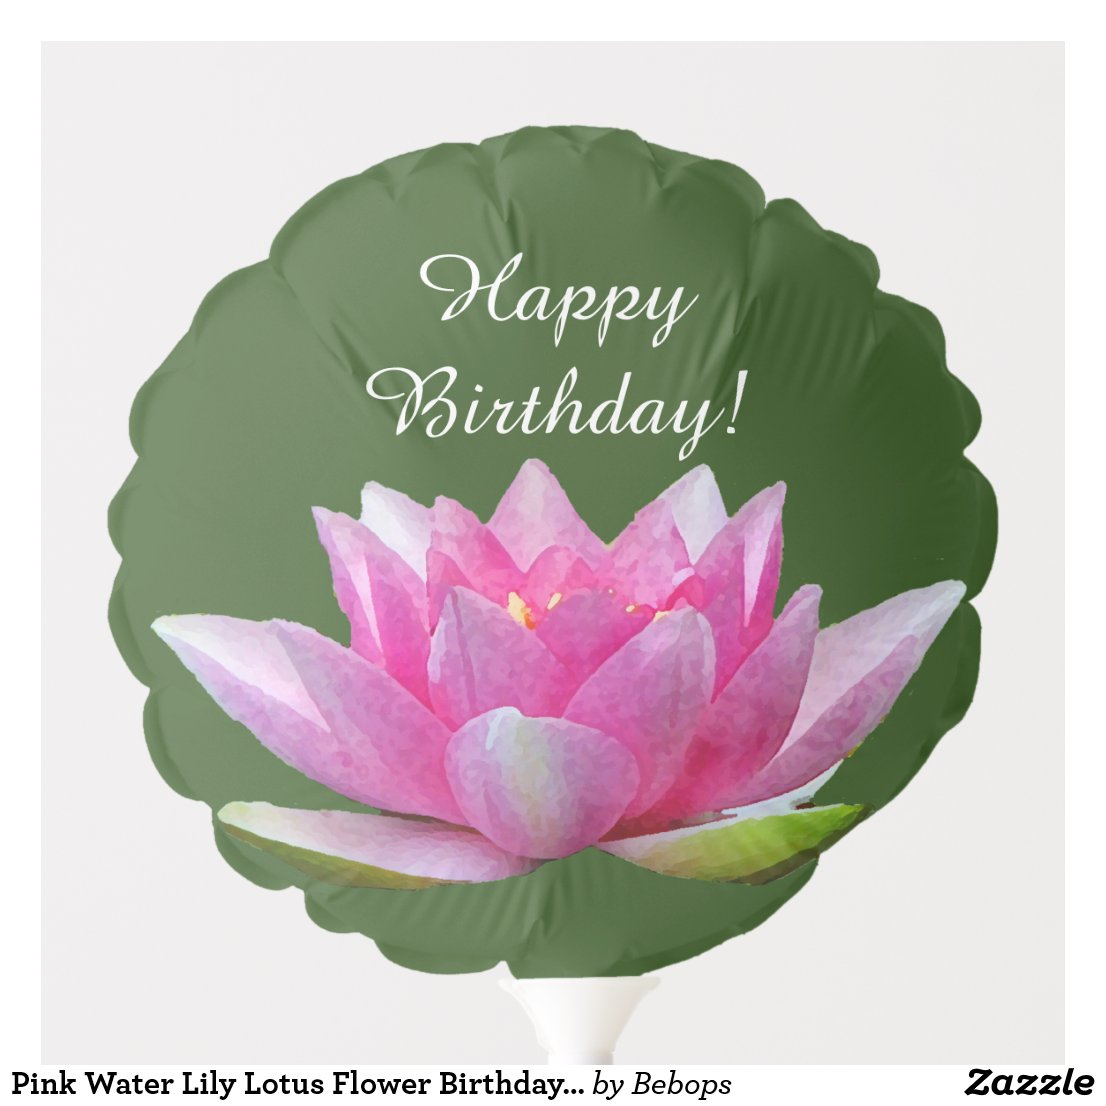 Pink Water Lily Lotus Flower Birthday Balloon